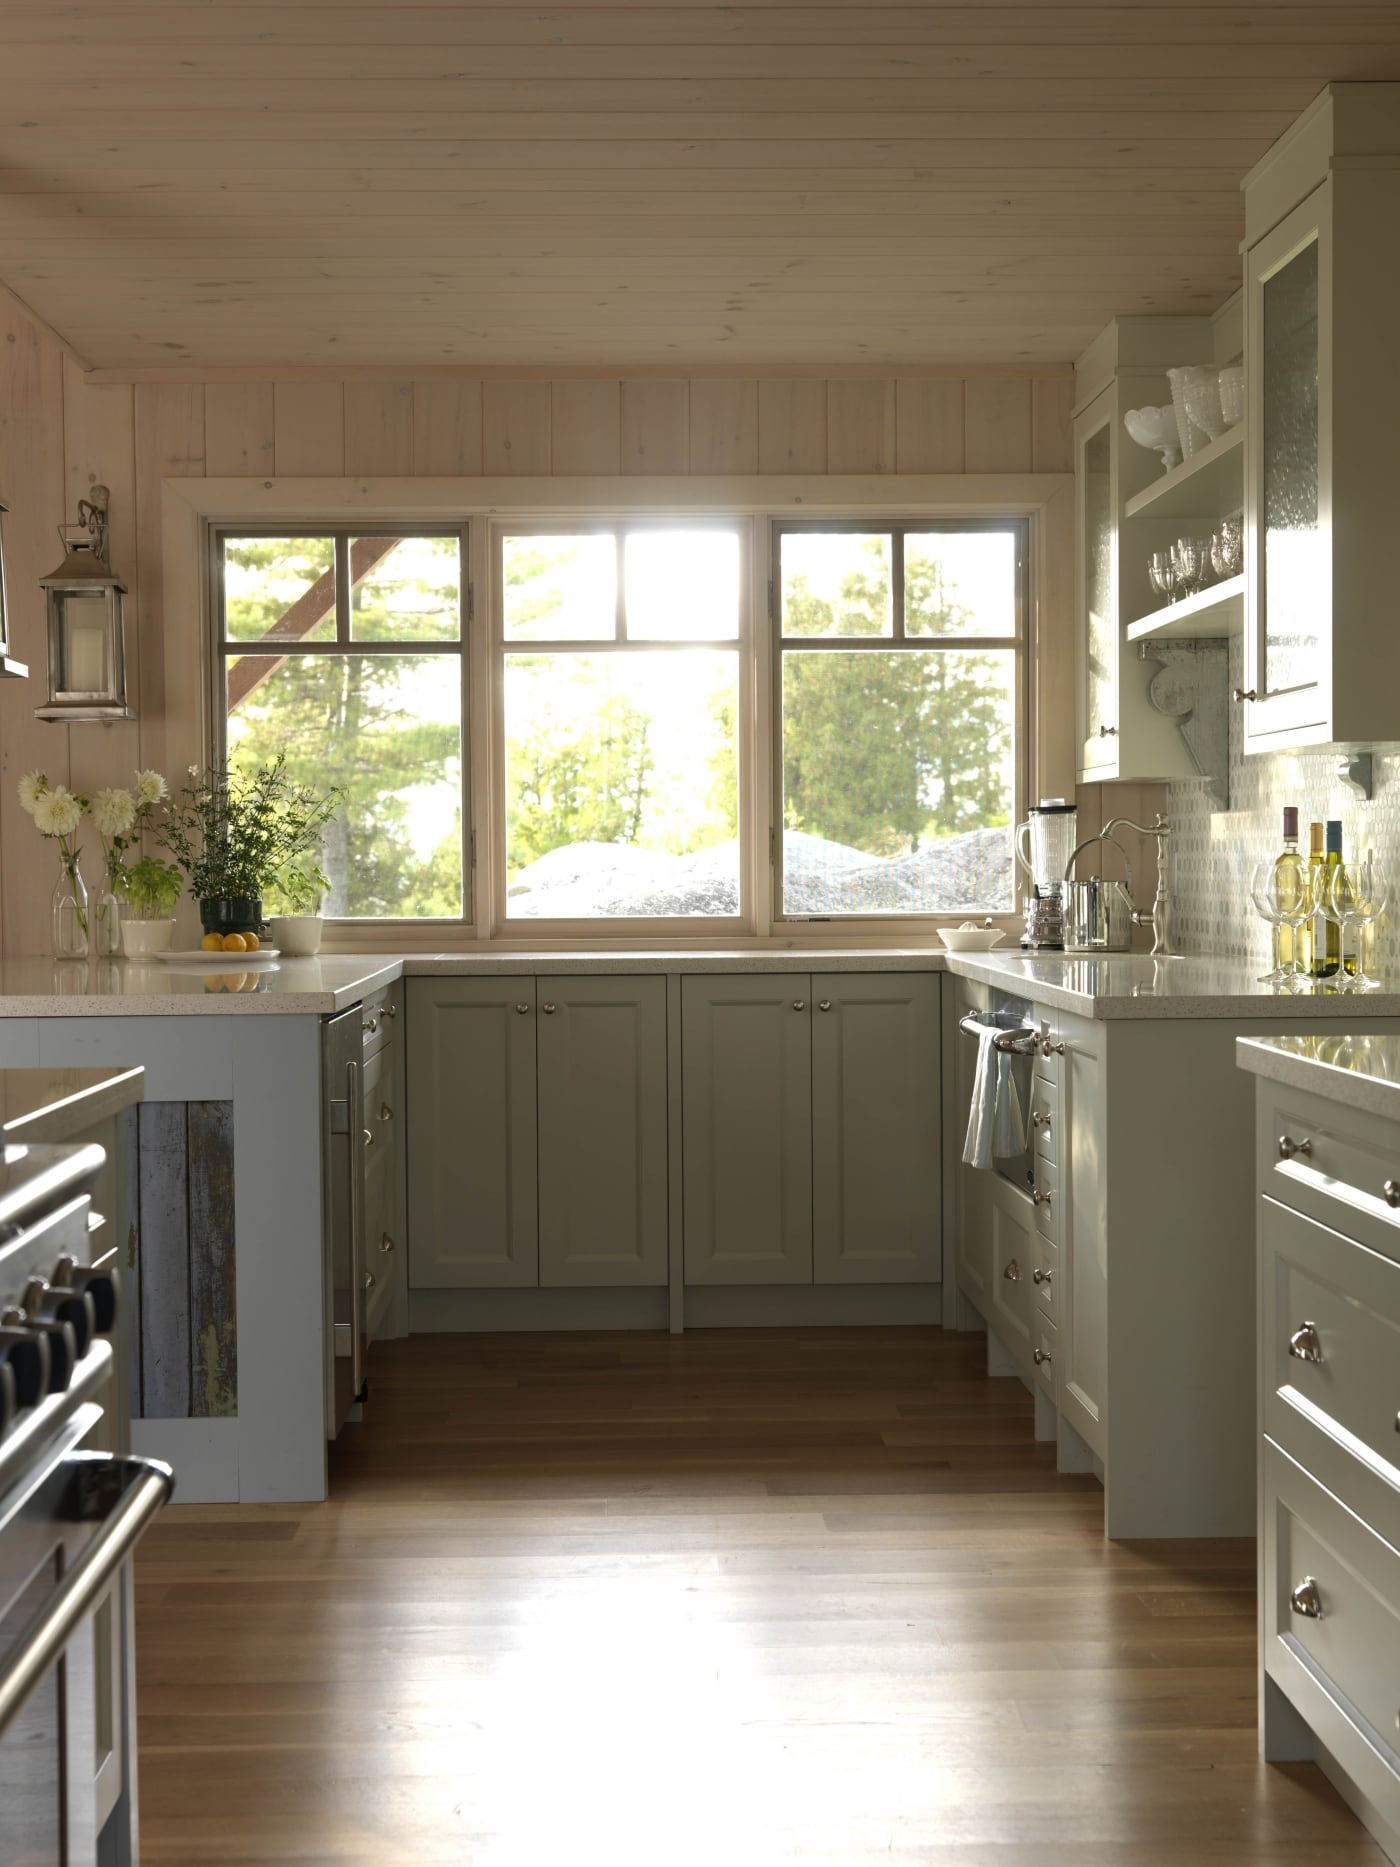 Painted cabinets, whitewashed knotty pine paneling, and bright sunlight in cottage kitchen